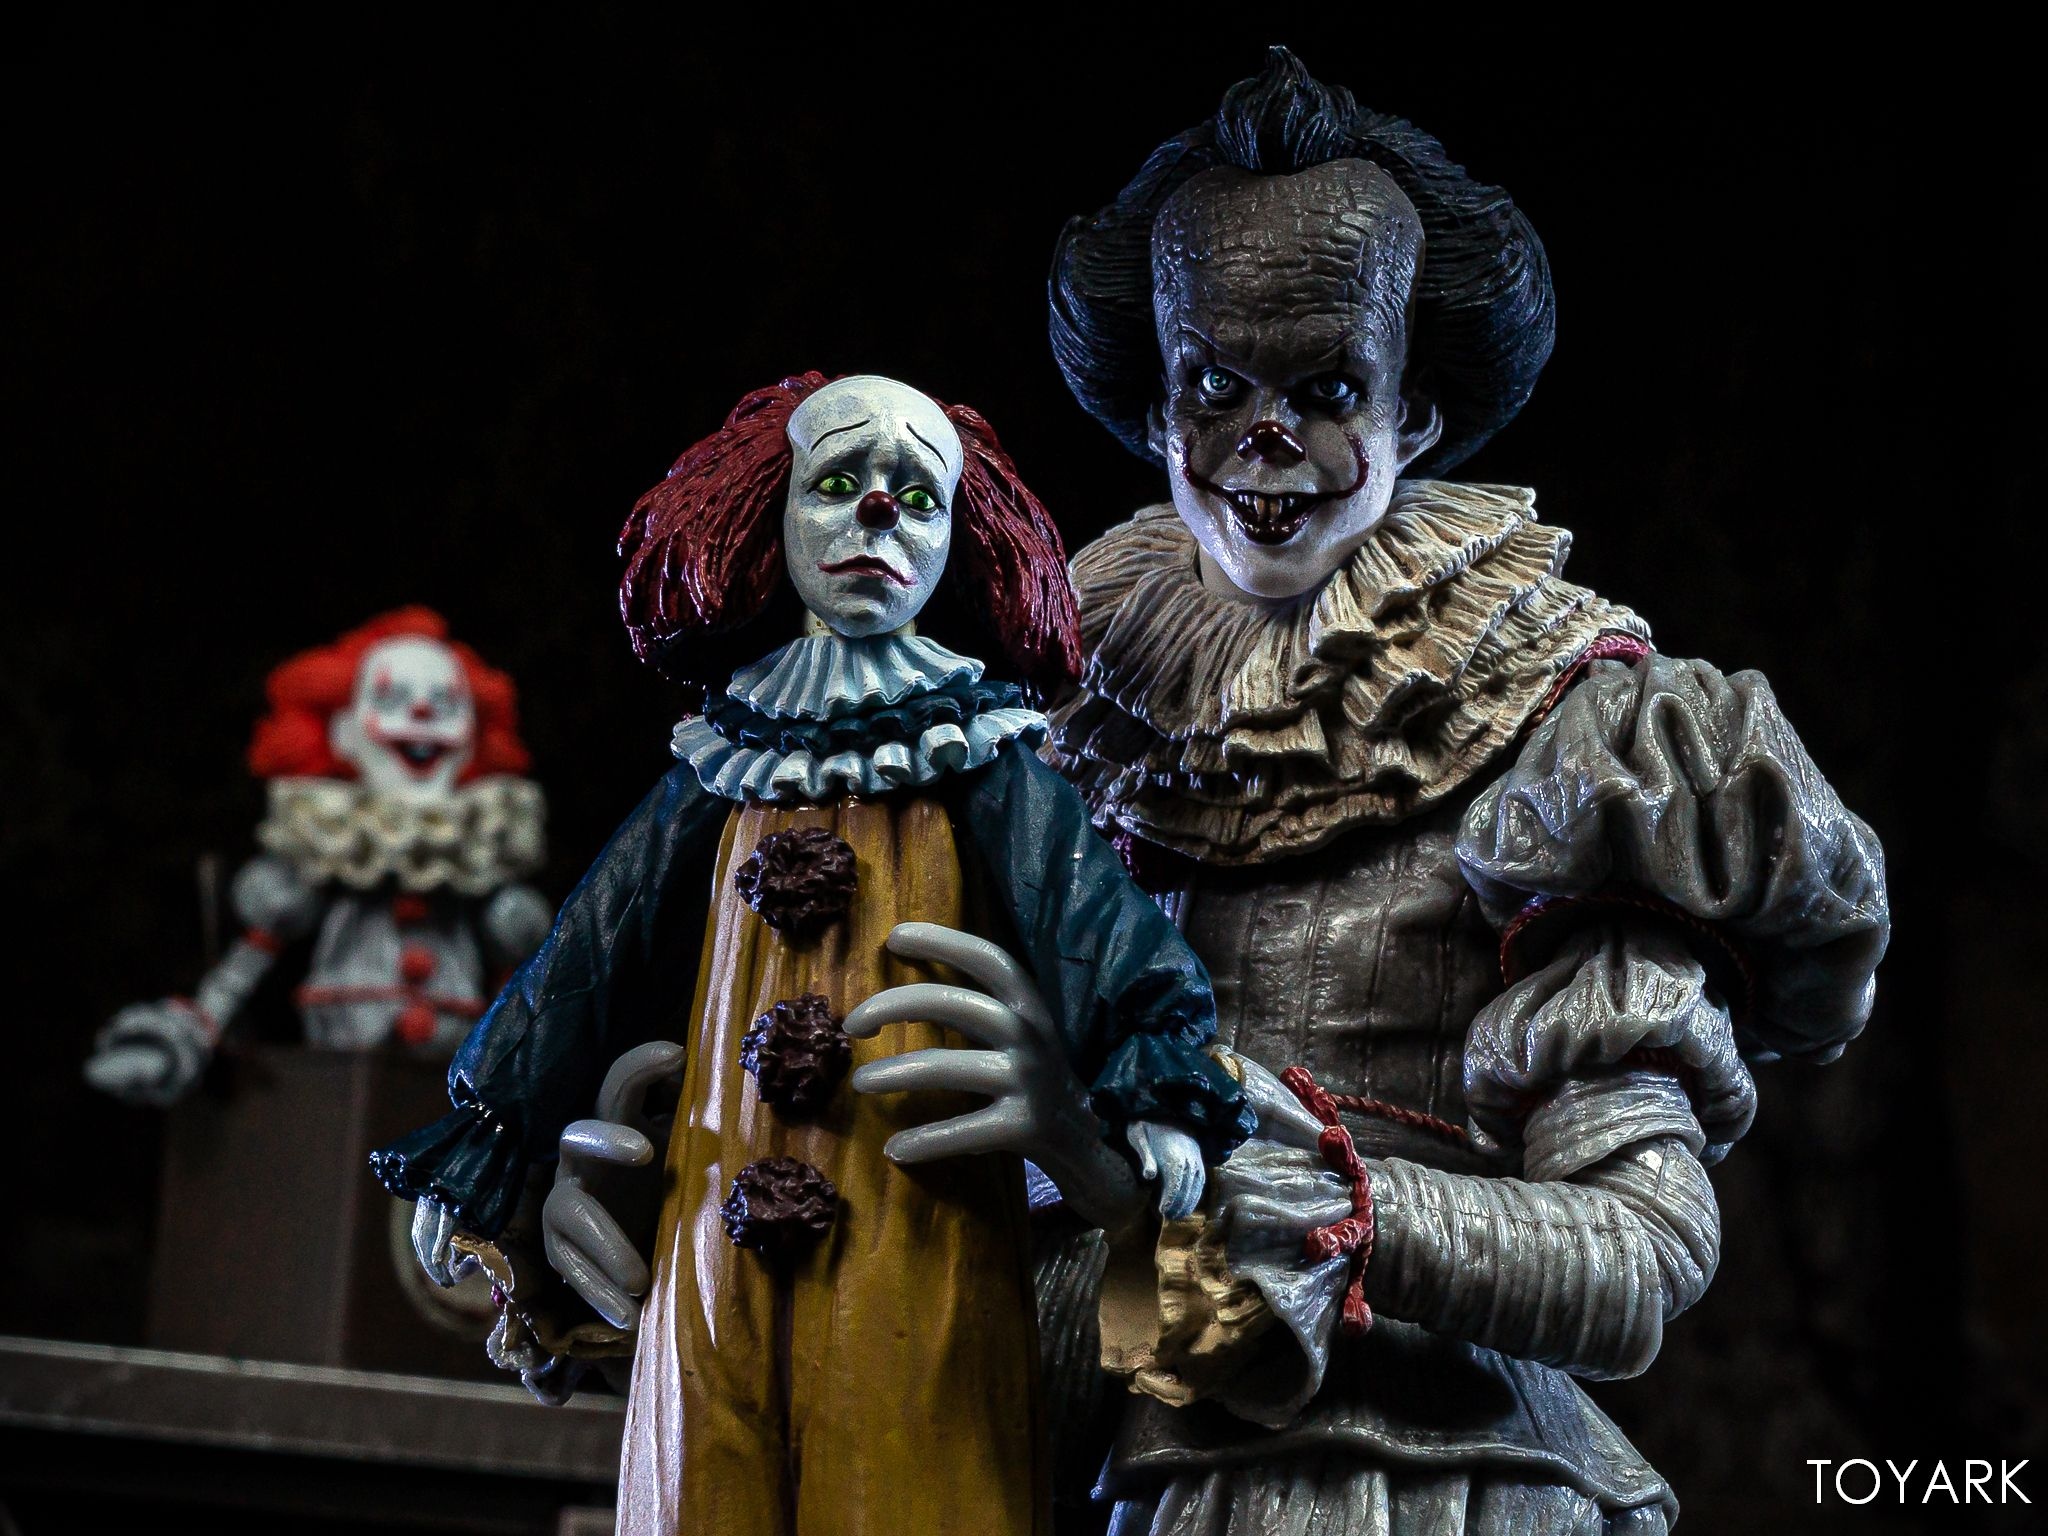 https://news.toyark.com/wp-content/uploads/sites/4/2019/05/NECA-Pennywise-Accessory-Set-046.jpg